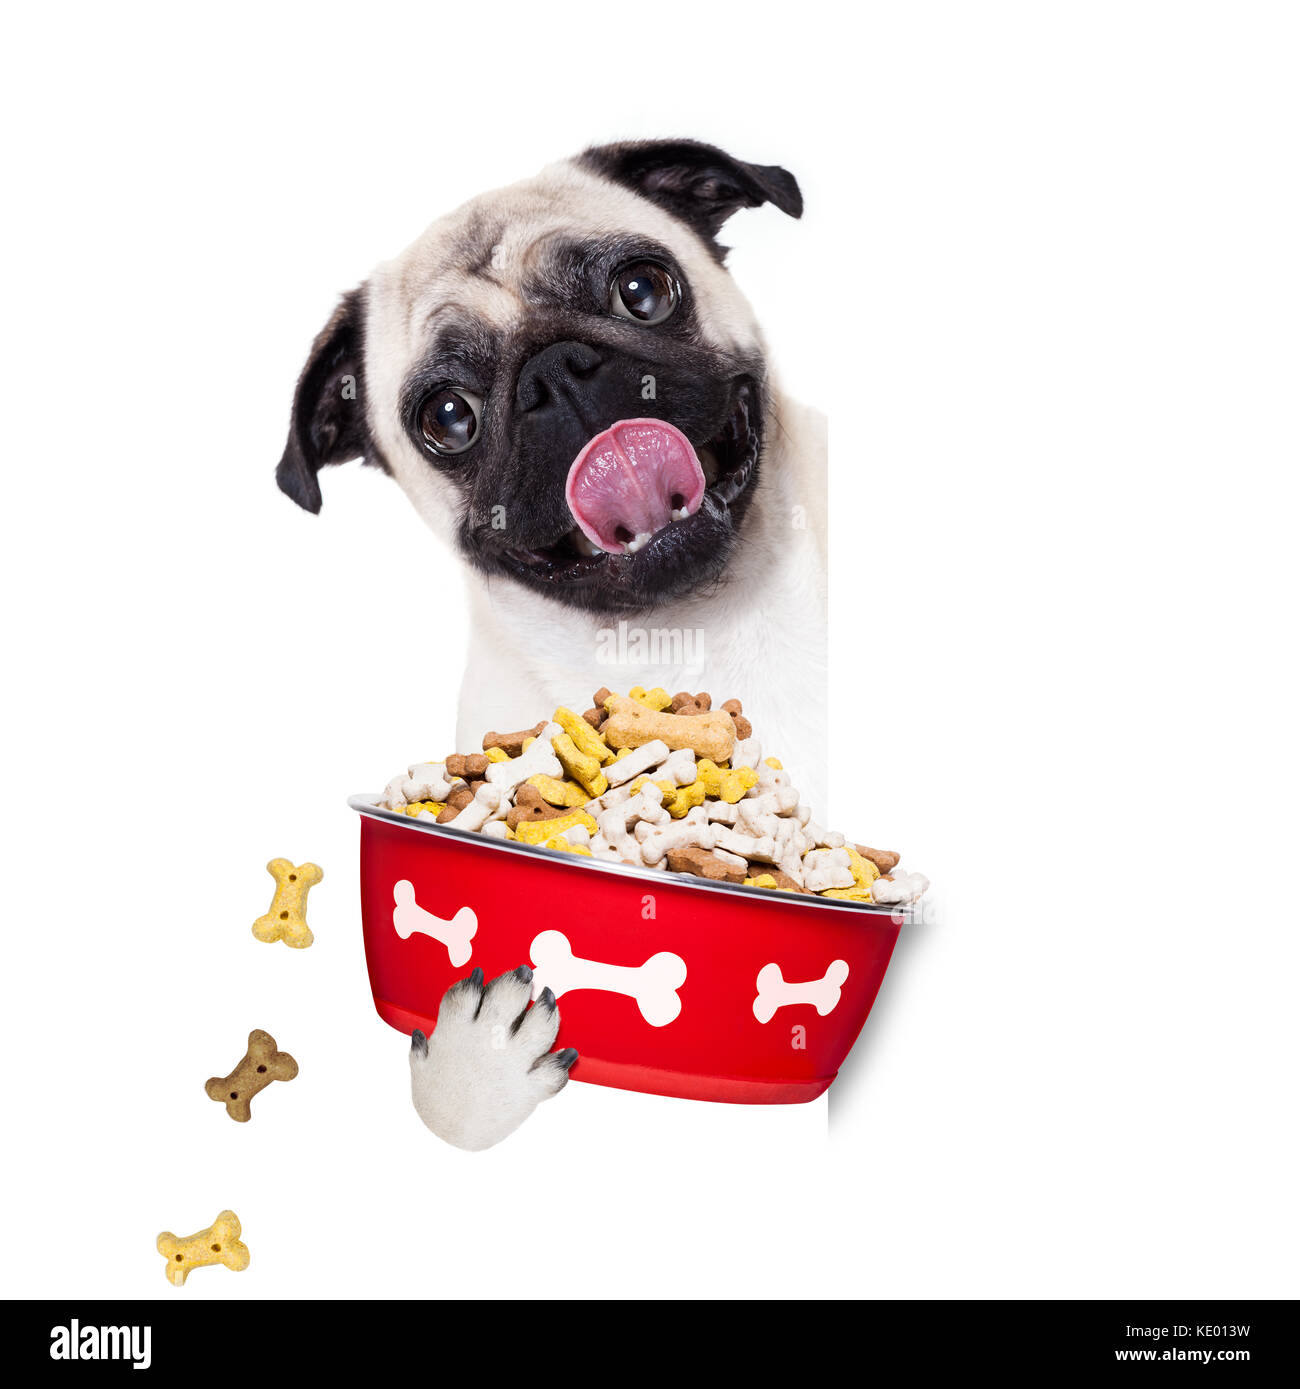 hungry  pug  dog holding food bowl and licking with tongue, isolated on white background - Stock Image